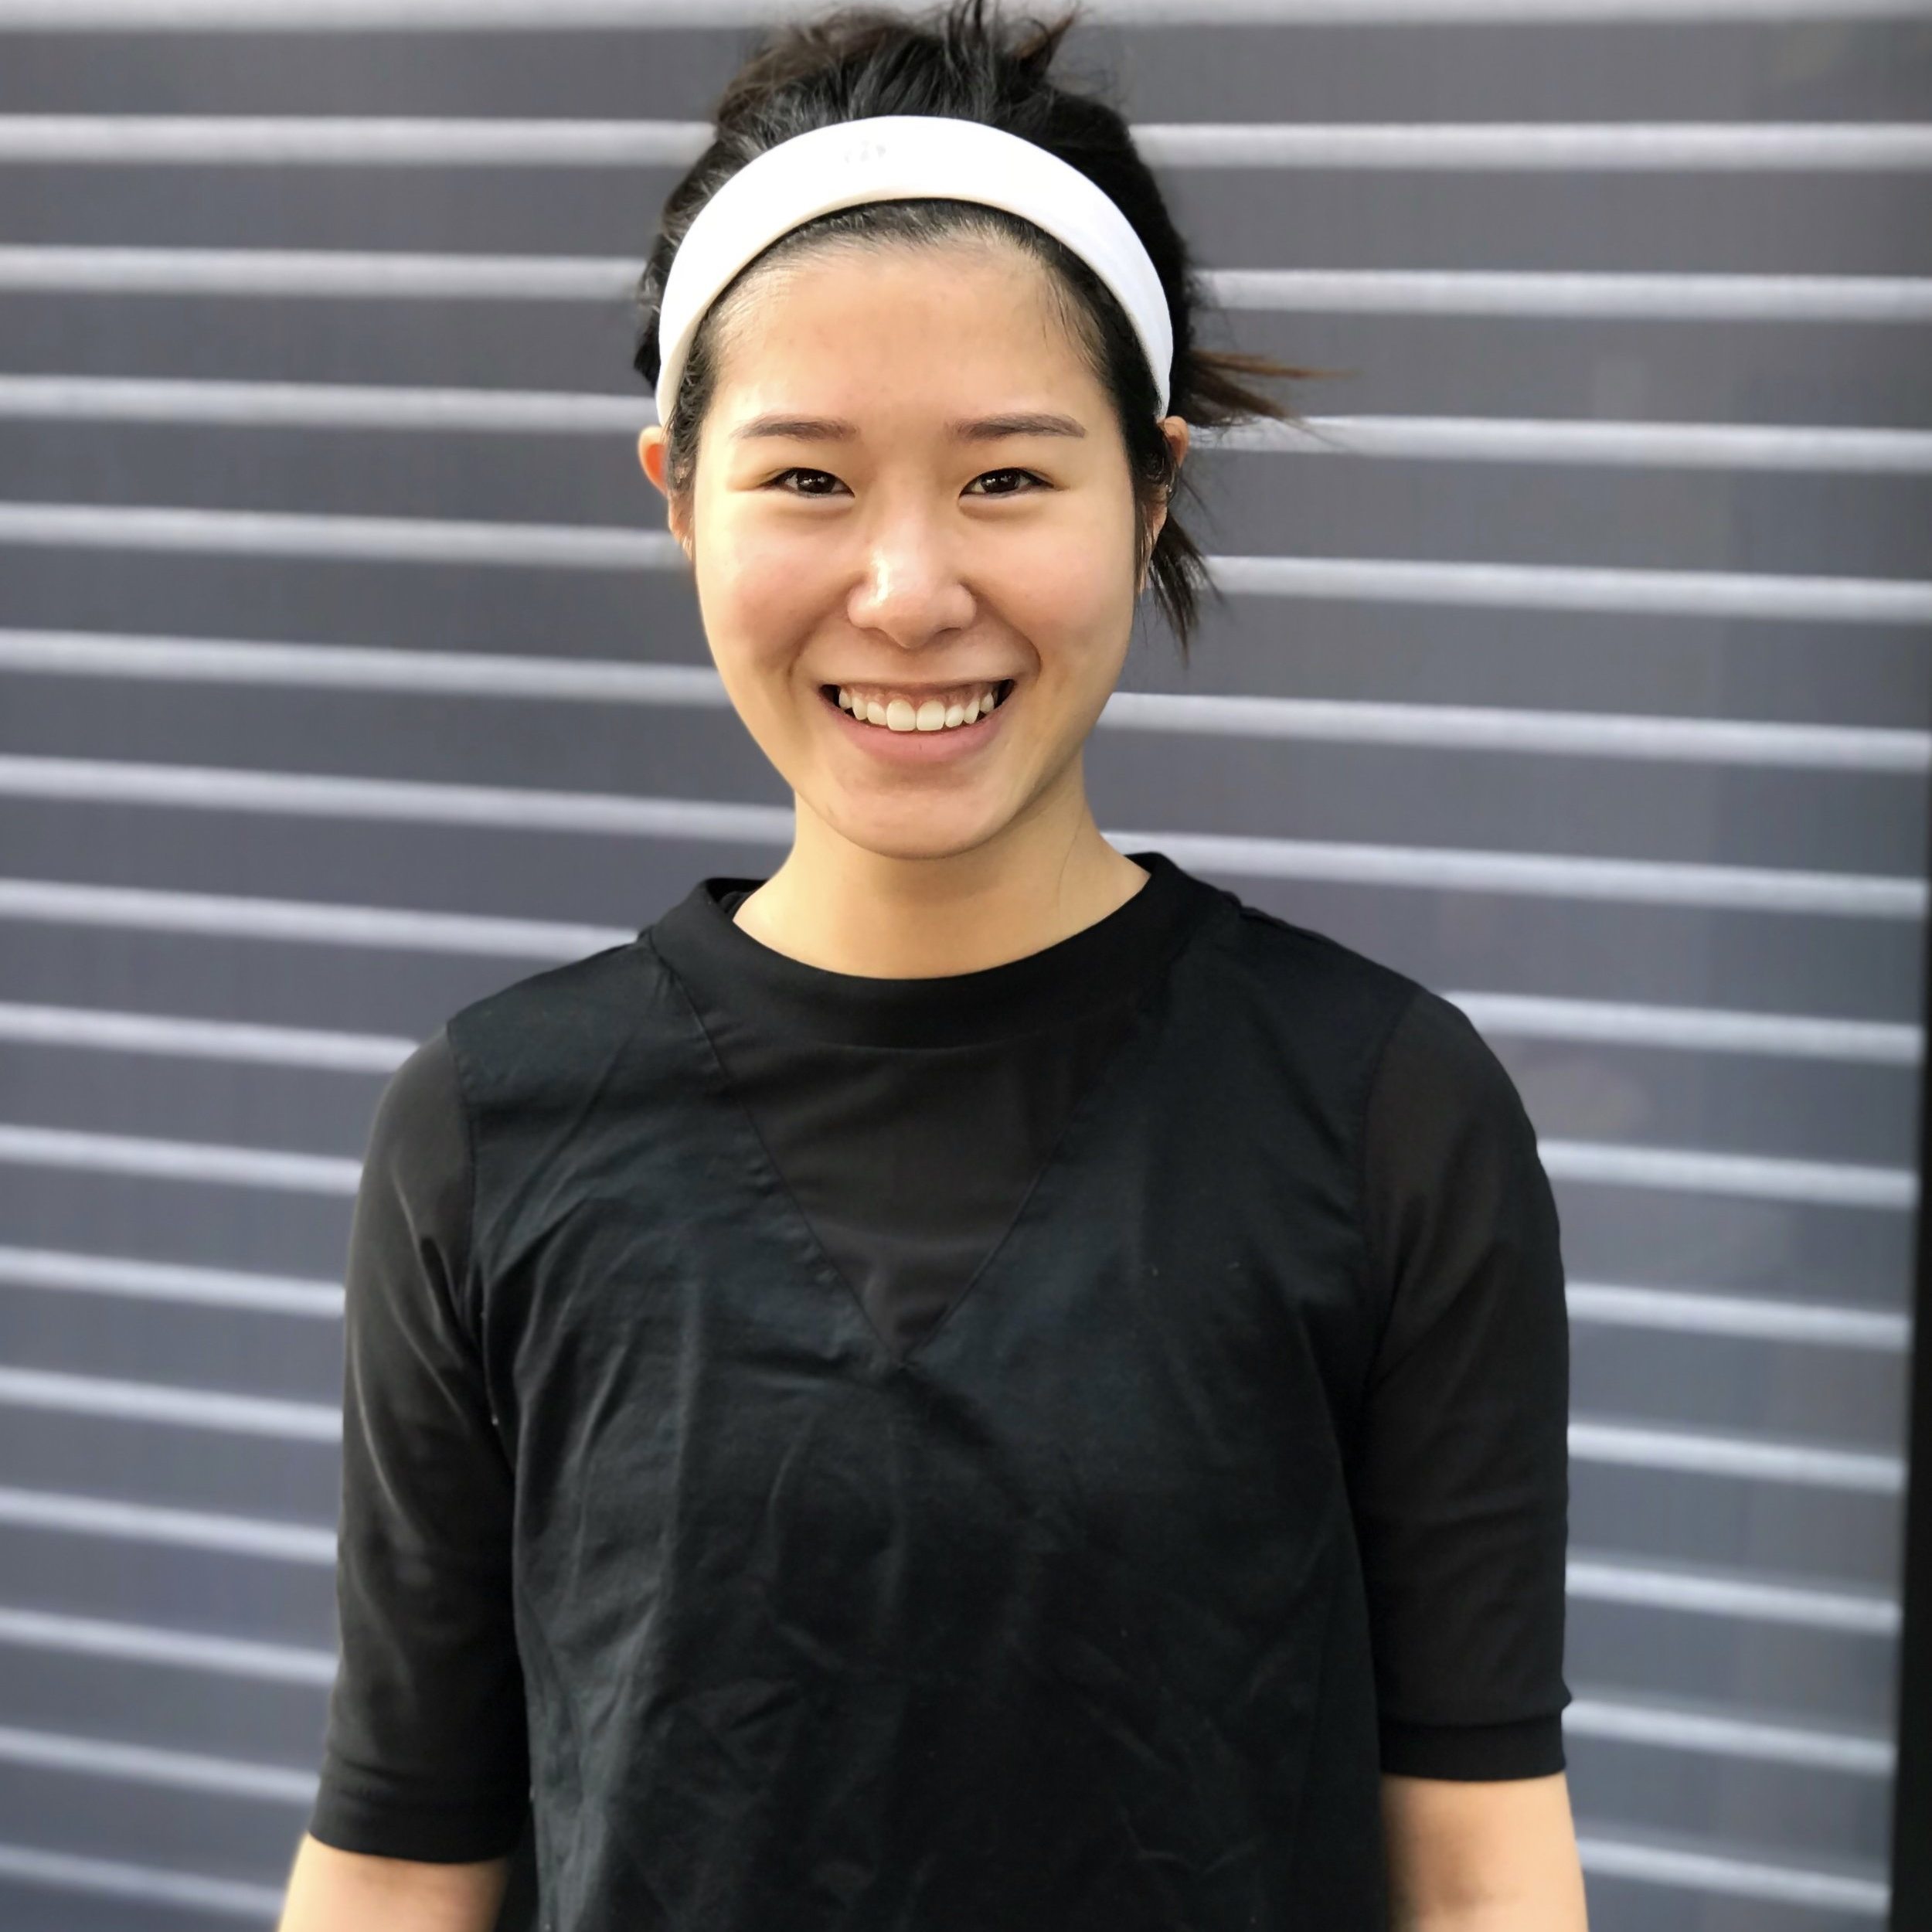 Gina Kim - I have been training with Diego for a few months now and I am always super excited to work out with him. As a trainer, Diego is extremely dedicated and tailors workouts to meet my personal needs. Although the workouts are super fun, they are still always enough to keep me sore for a few days— he will always challenge you! Every time we meet, he keeps track of our progress and makes sure I'm seeing the results that I want. Aside from his qualities as a trainer, Diego is an extremely kind and caring human being. He always has a smile on his face and creates such good energy for our workouts!